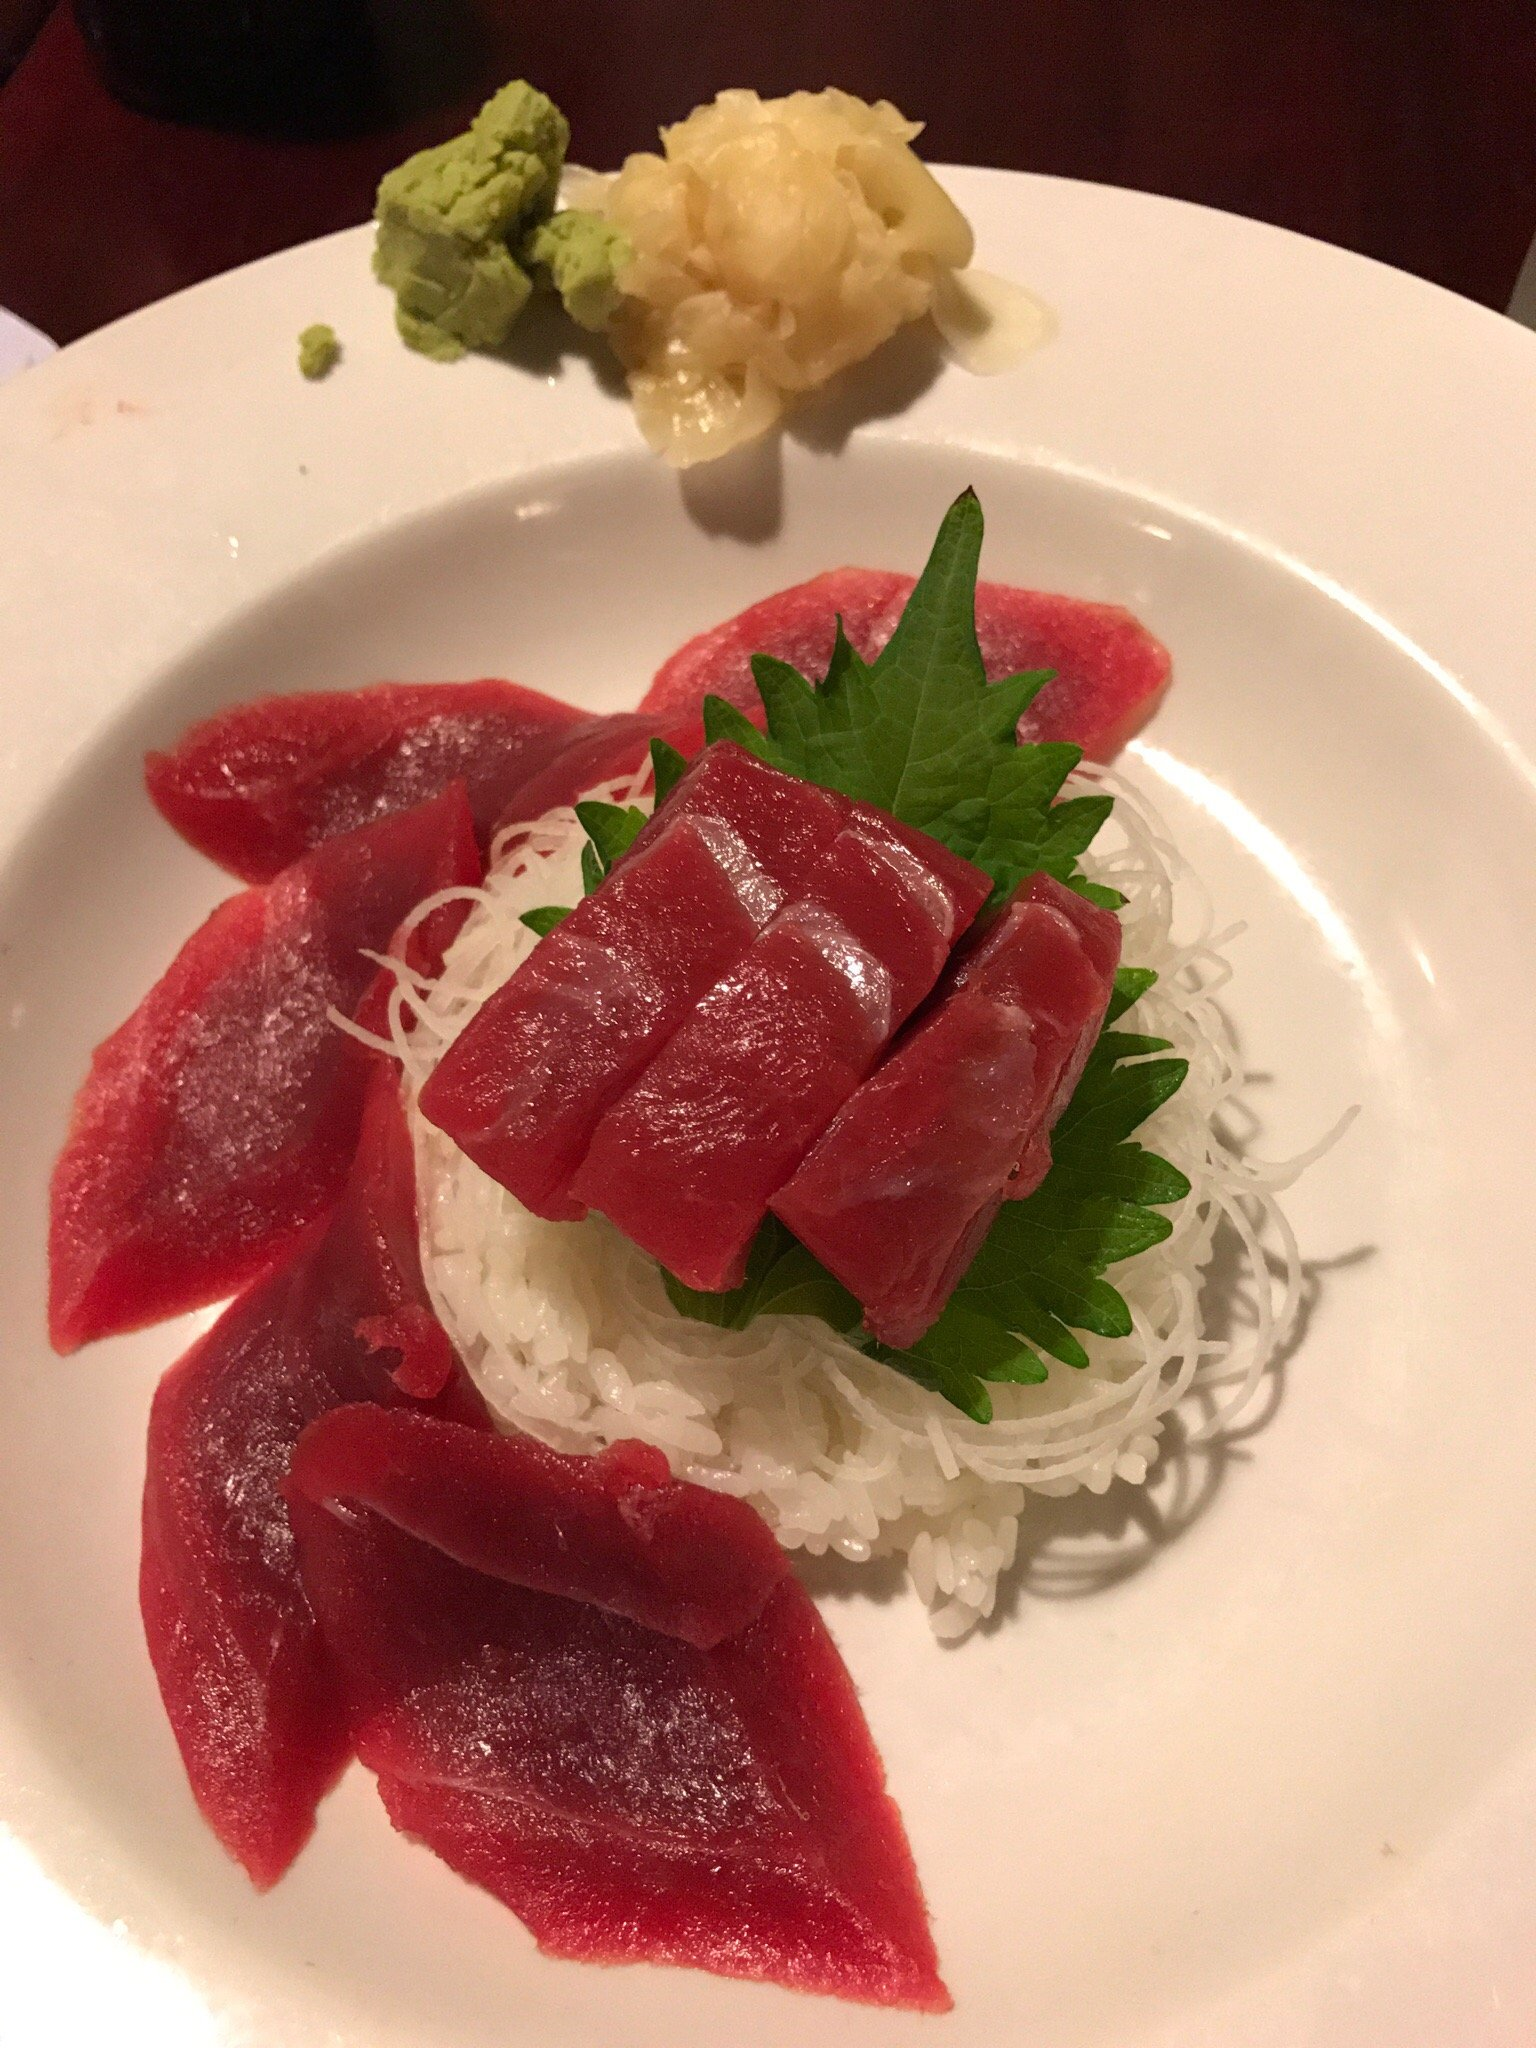 Tekkadon (tuna on white rice)